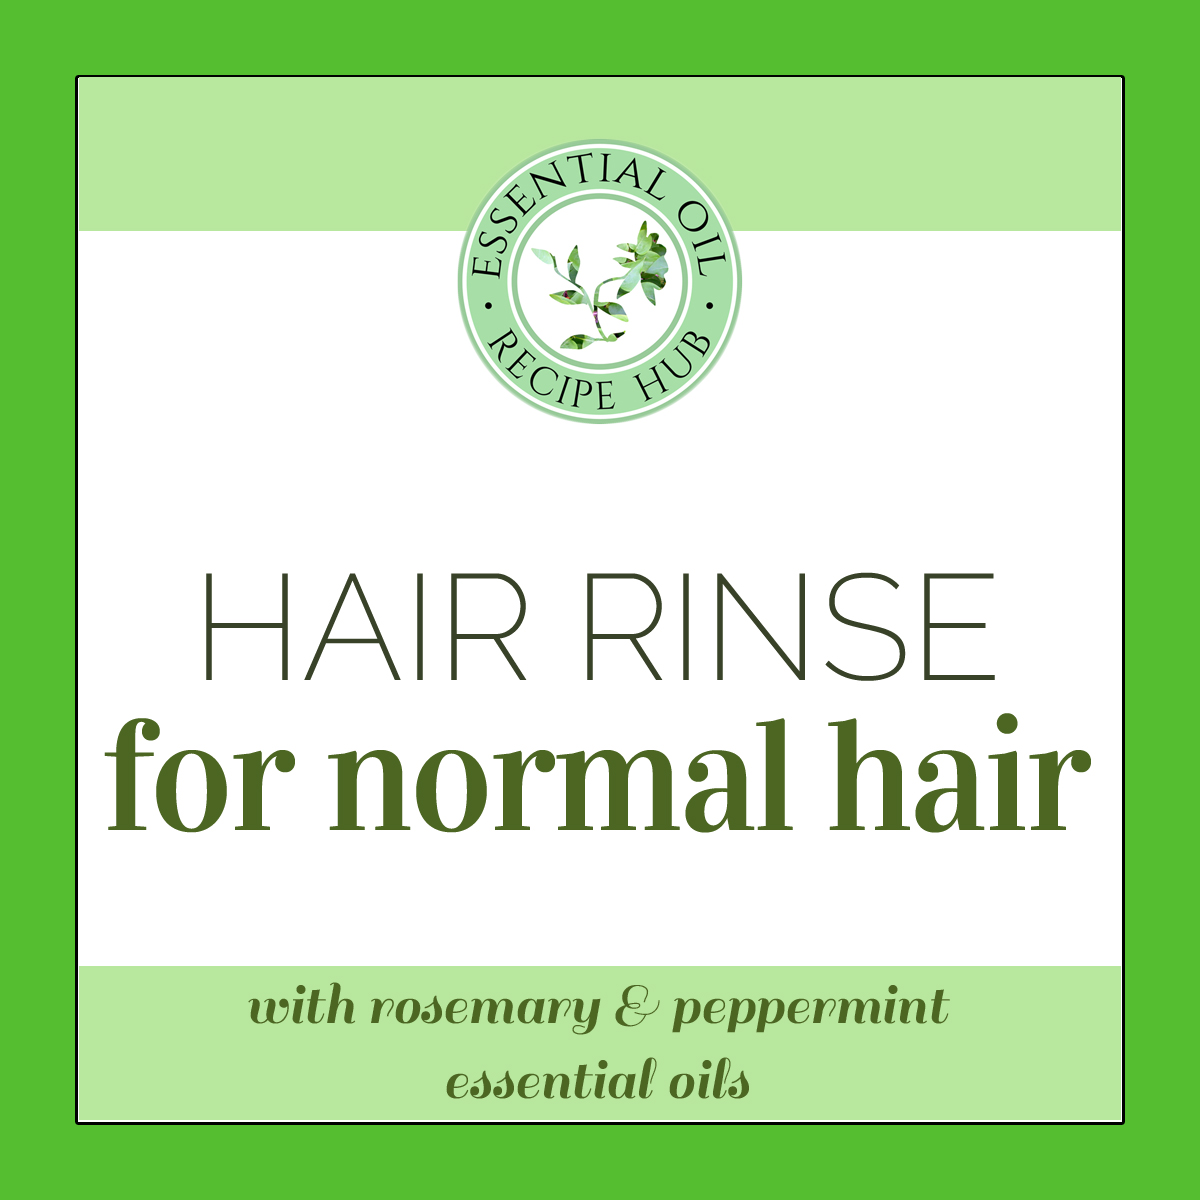 hair rinse for normal hair